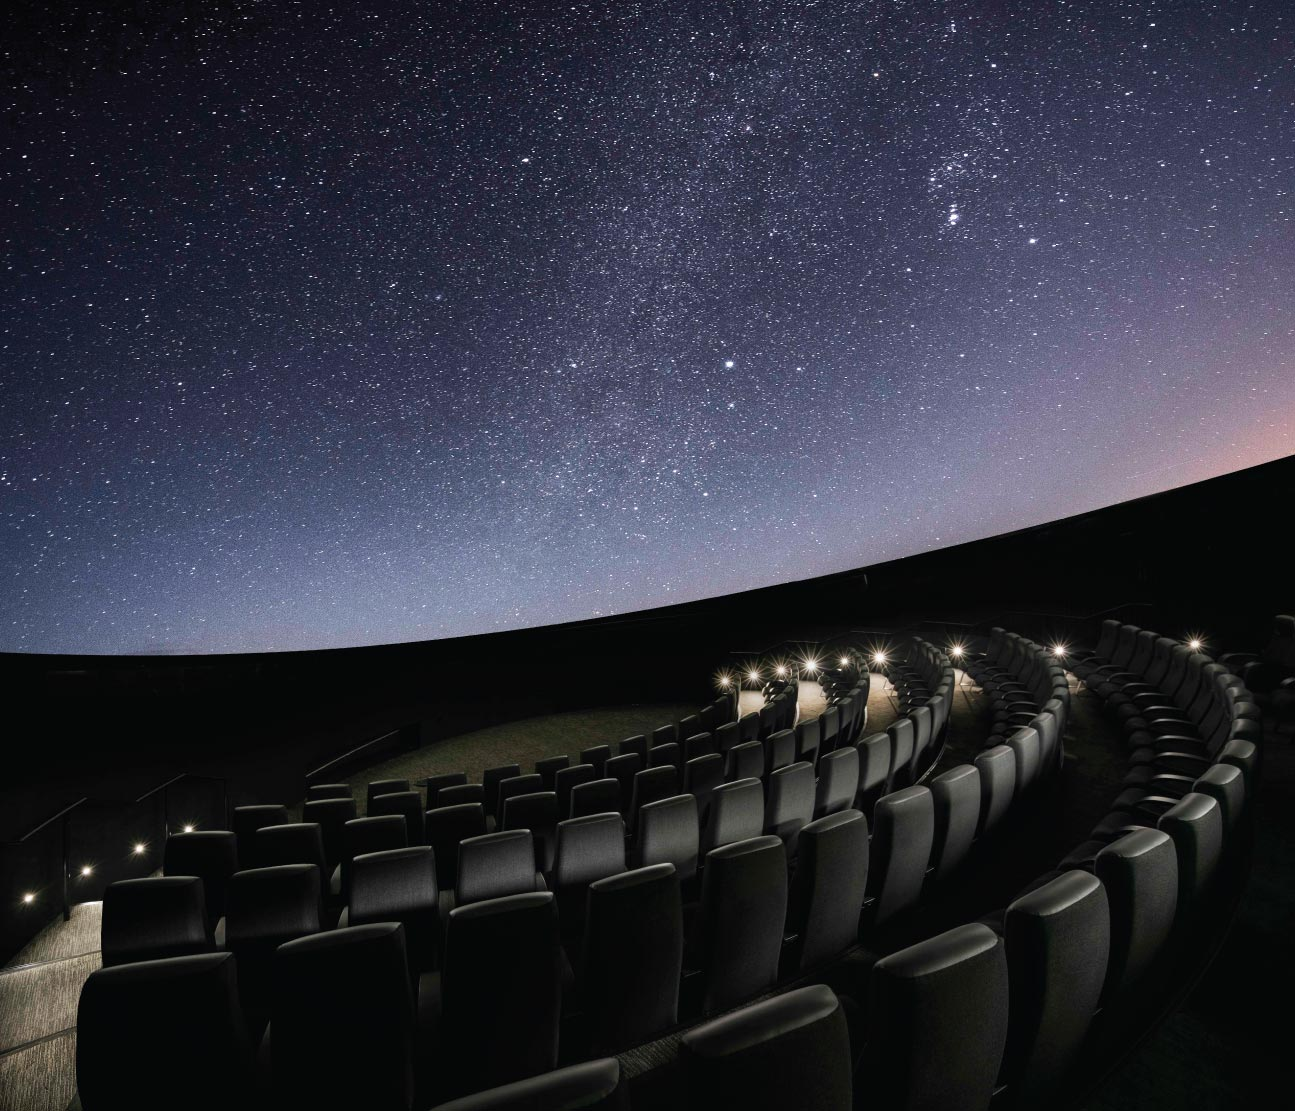 Planetarium theater with starry sky on the dome